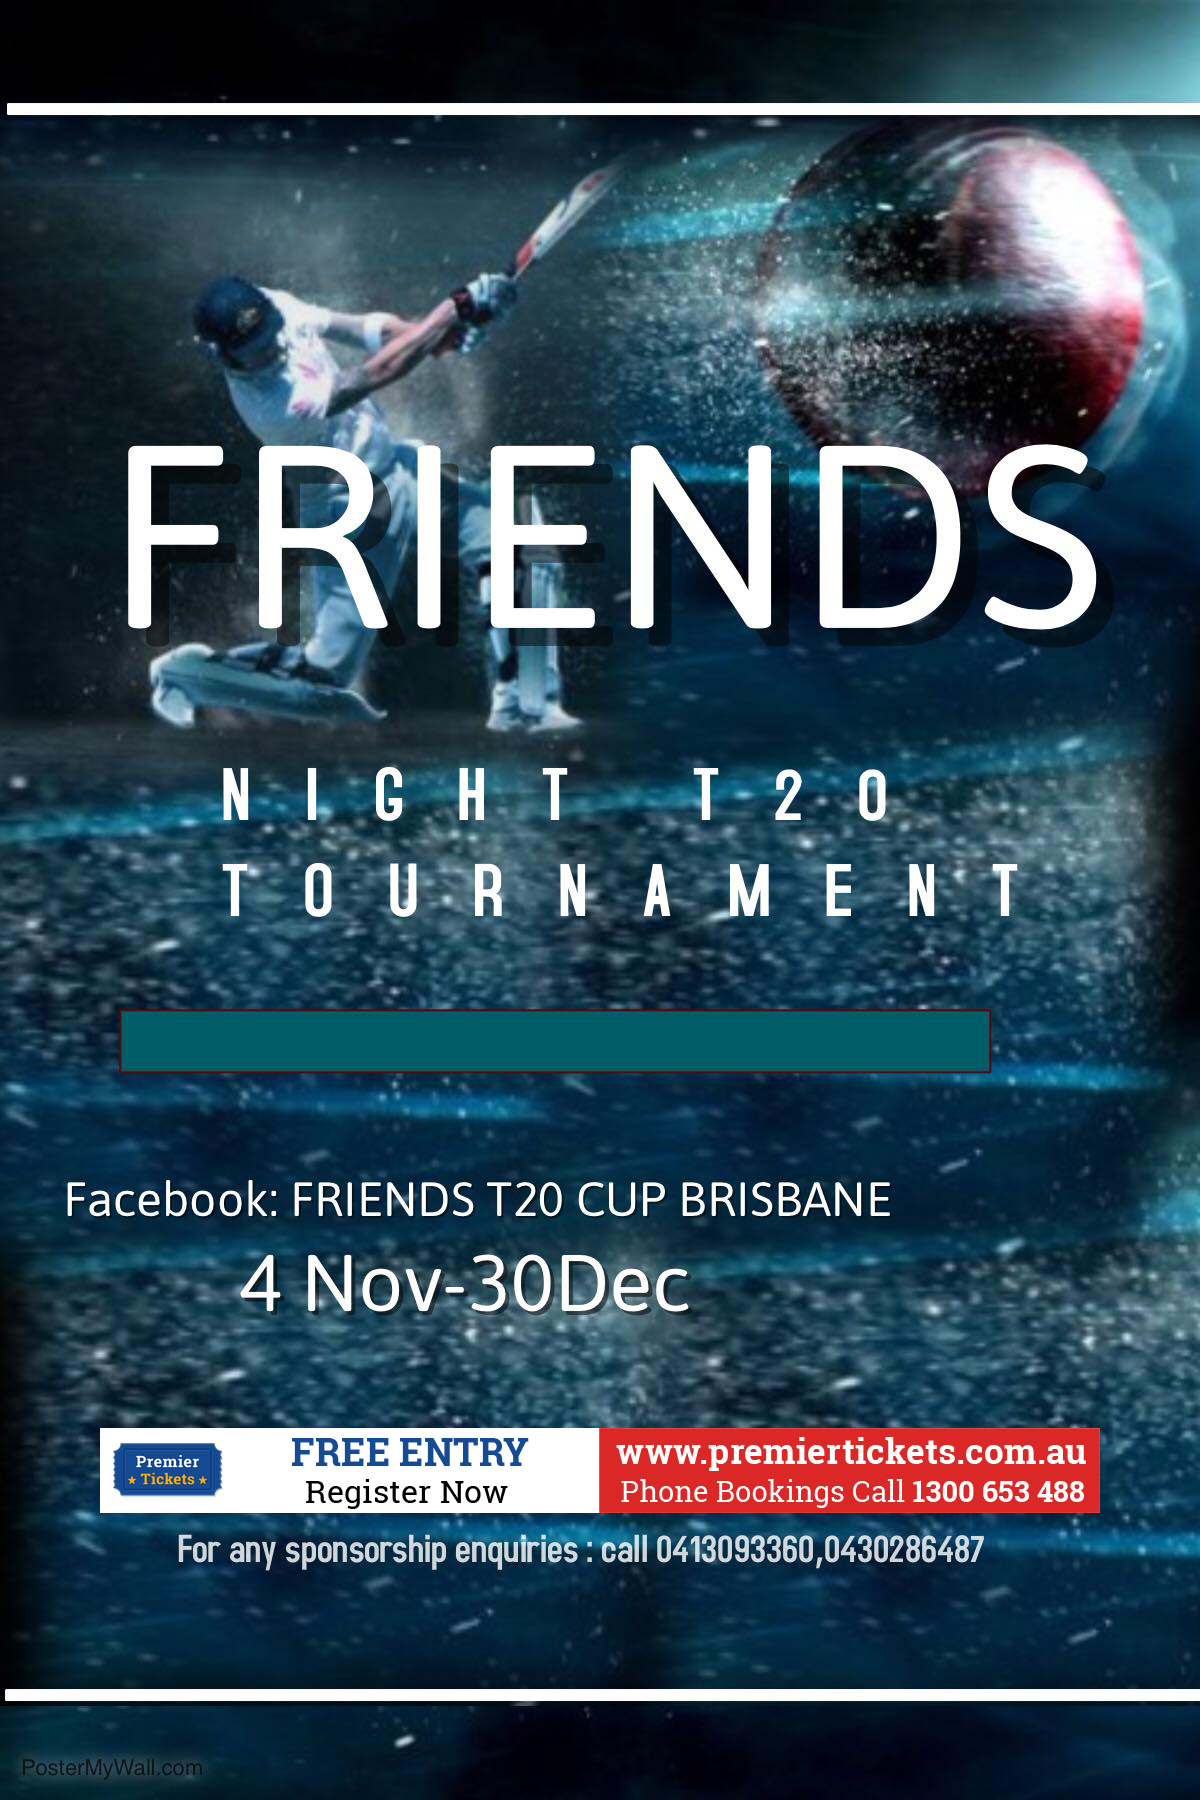 FRIENDS T20 CUP – REGISTER NOW